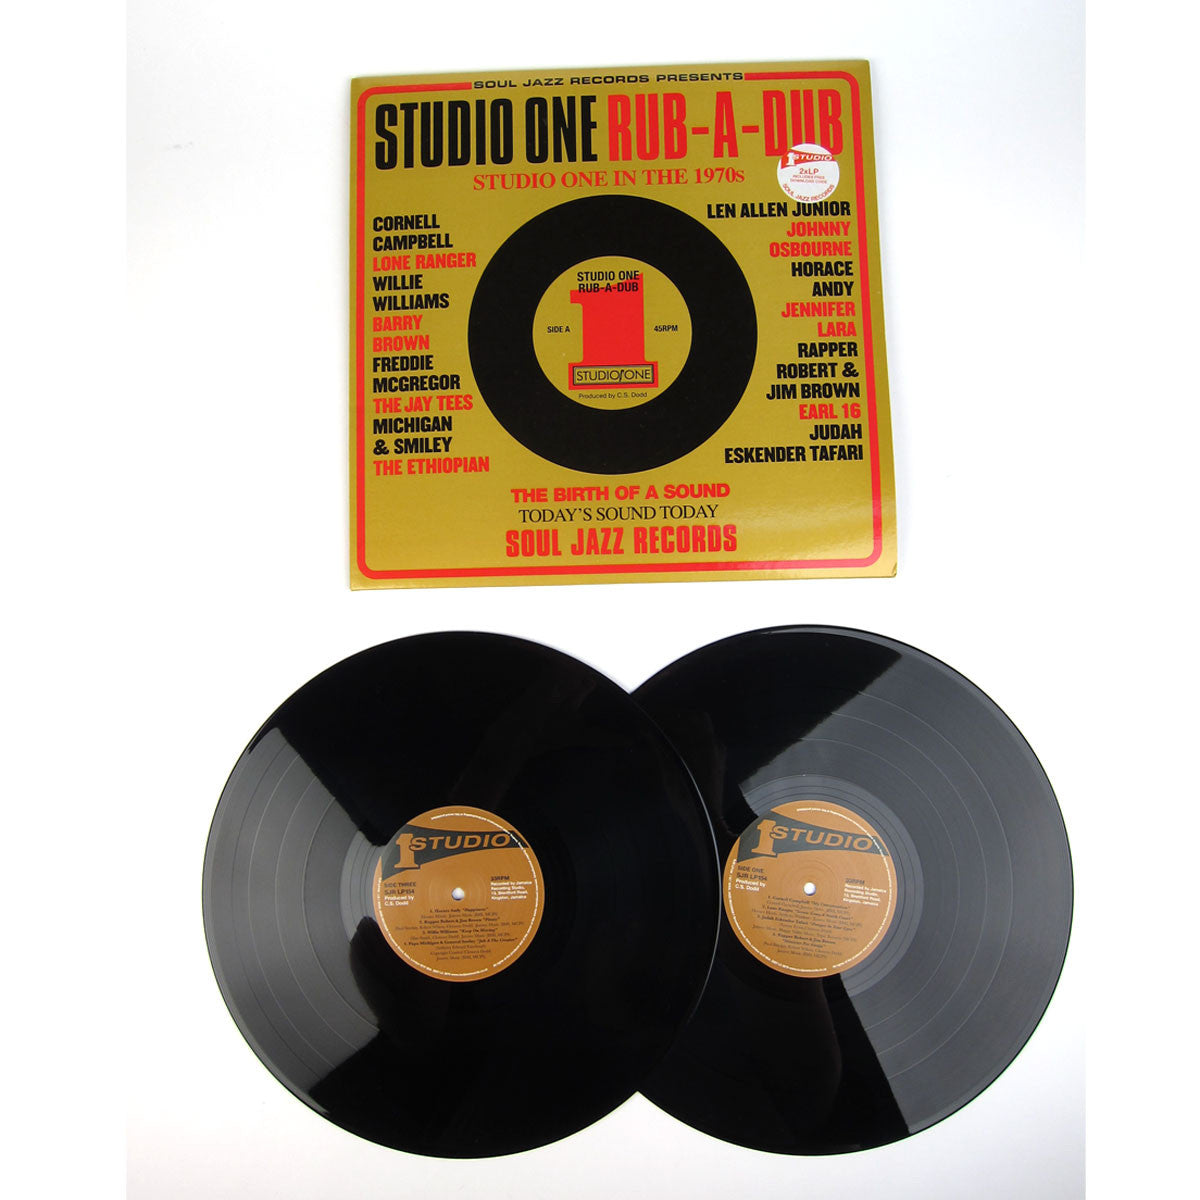 Soul Jazz Records: Studio One Rub-A-Dub Vinyl 2LP